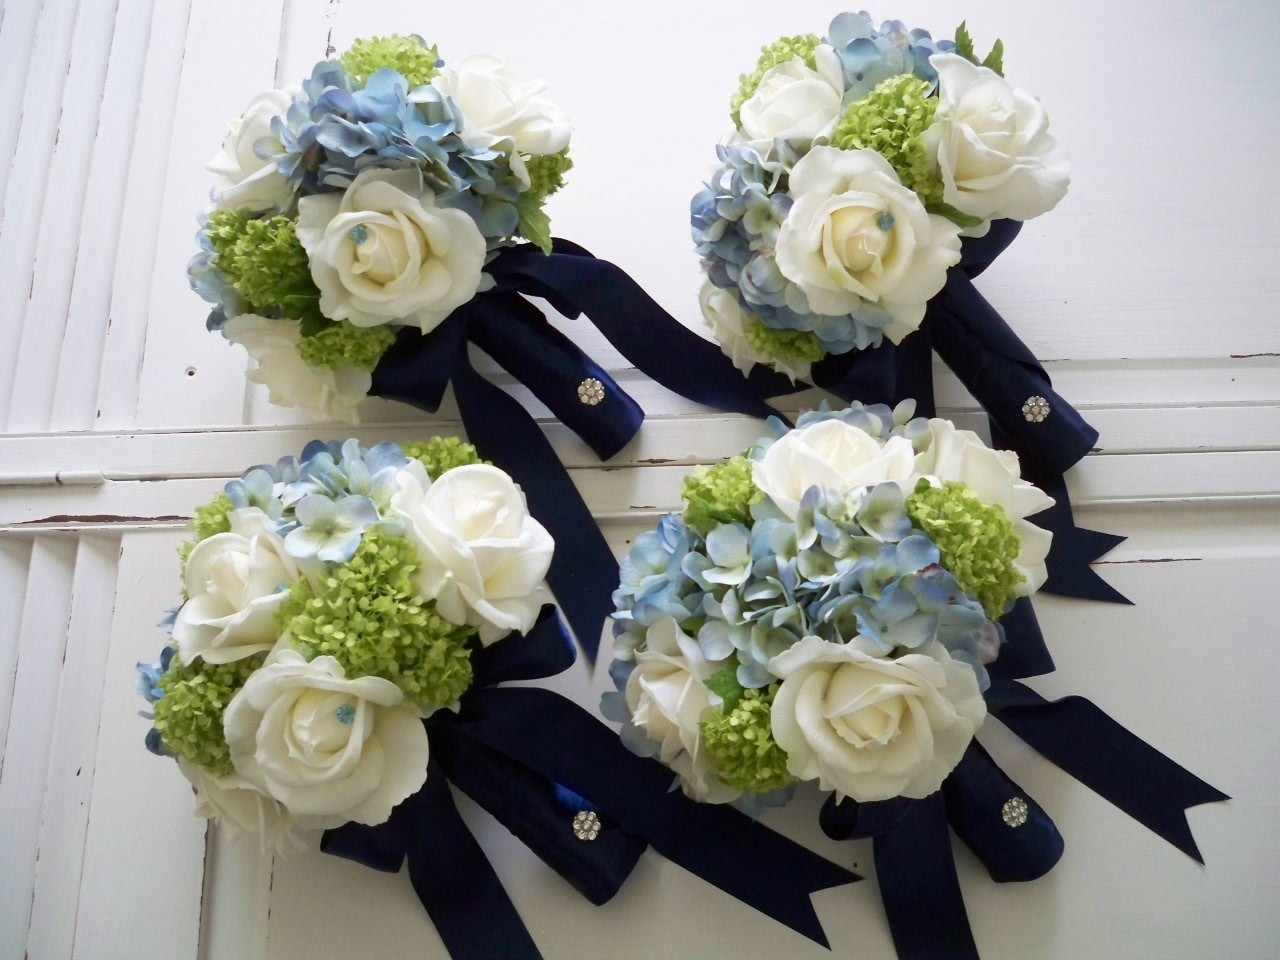 white-roses-with-green-and-blue-hydrangeas.jpg